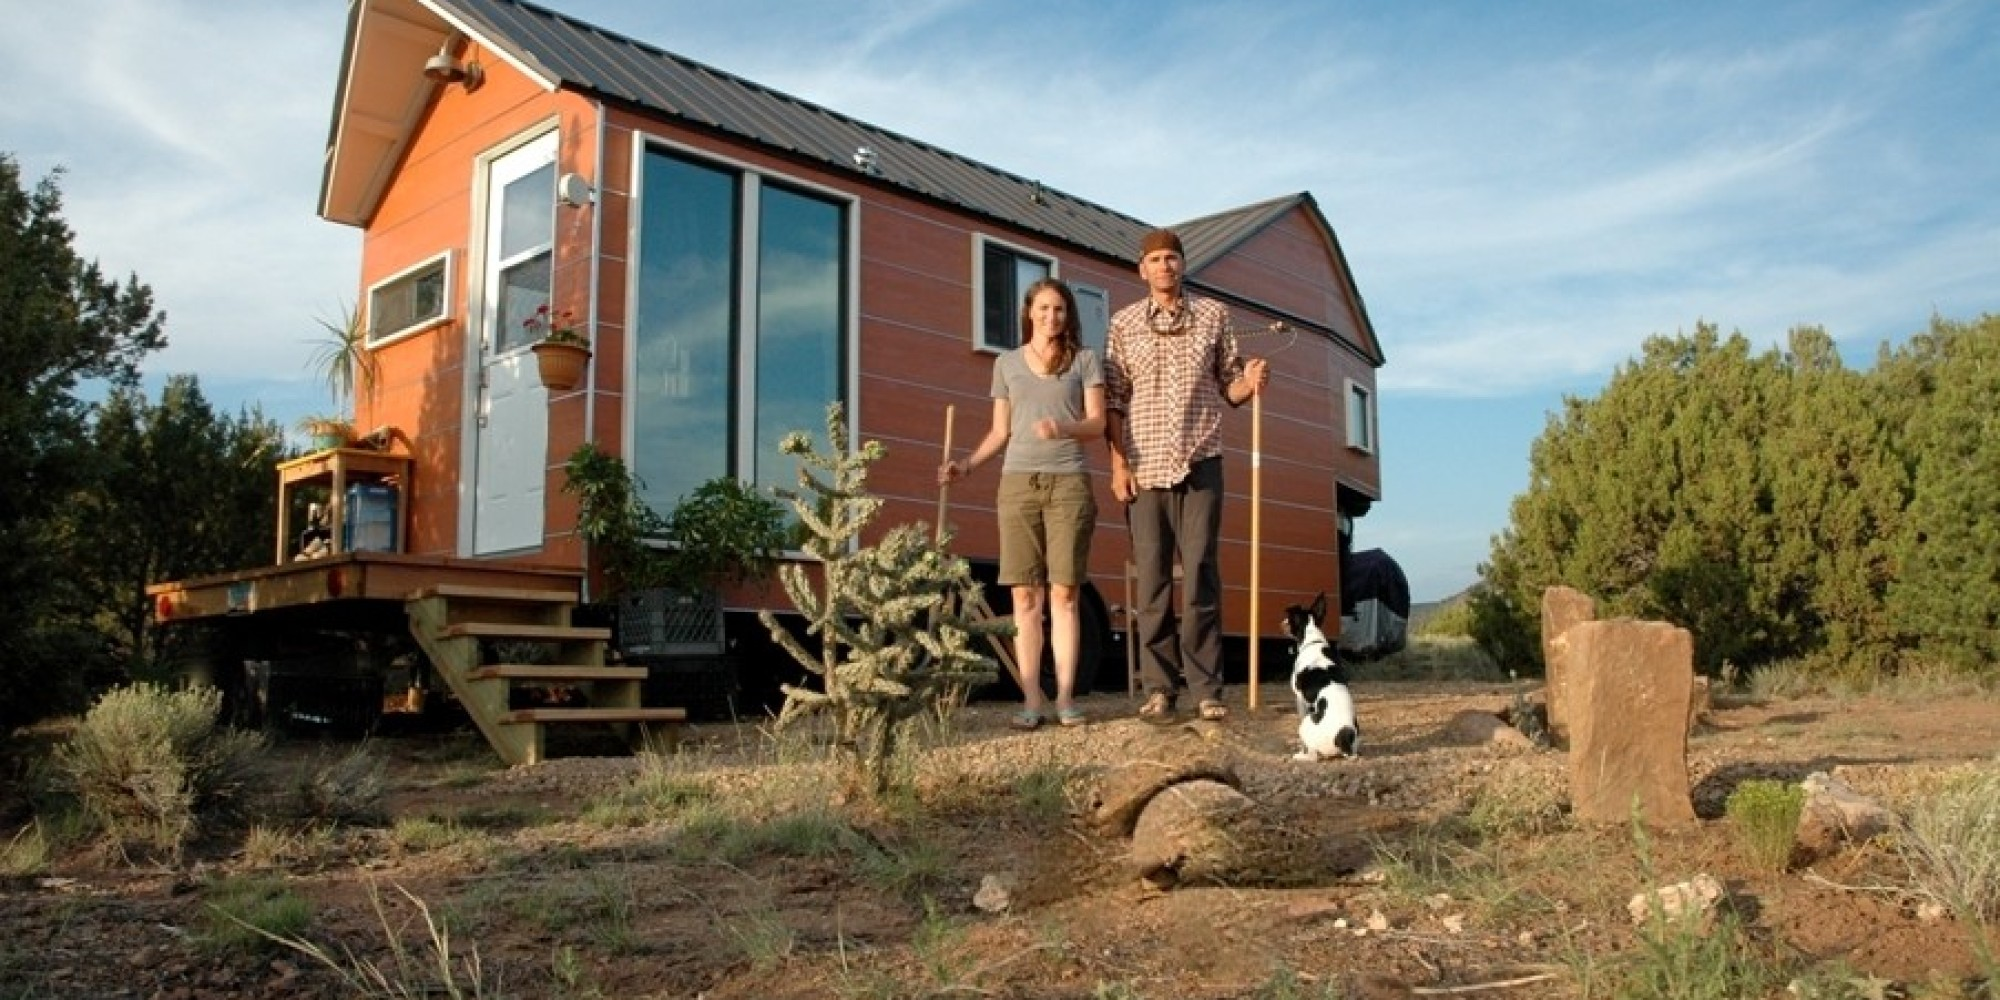 6 tiny homes that would be perfect starter houses for newlyweds photos huffington post